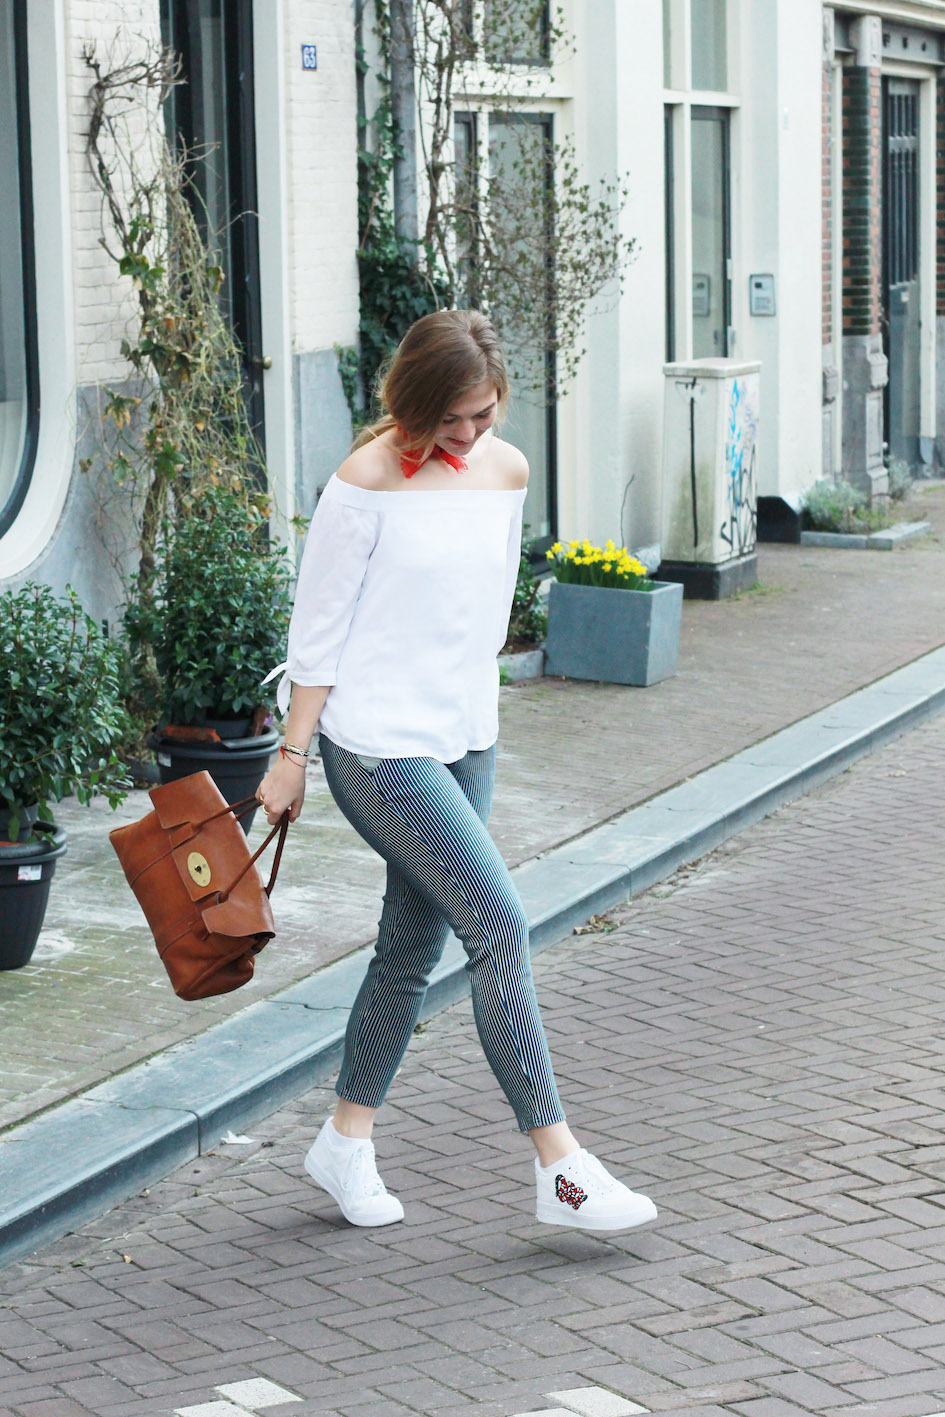 floortjeloves, parisian in another city, parisian, parisian style, comma, mulberry, mulberry bayswater, marc jabobs, fawl, nike, gucci, double strap watch, gucci watch